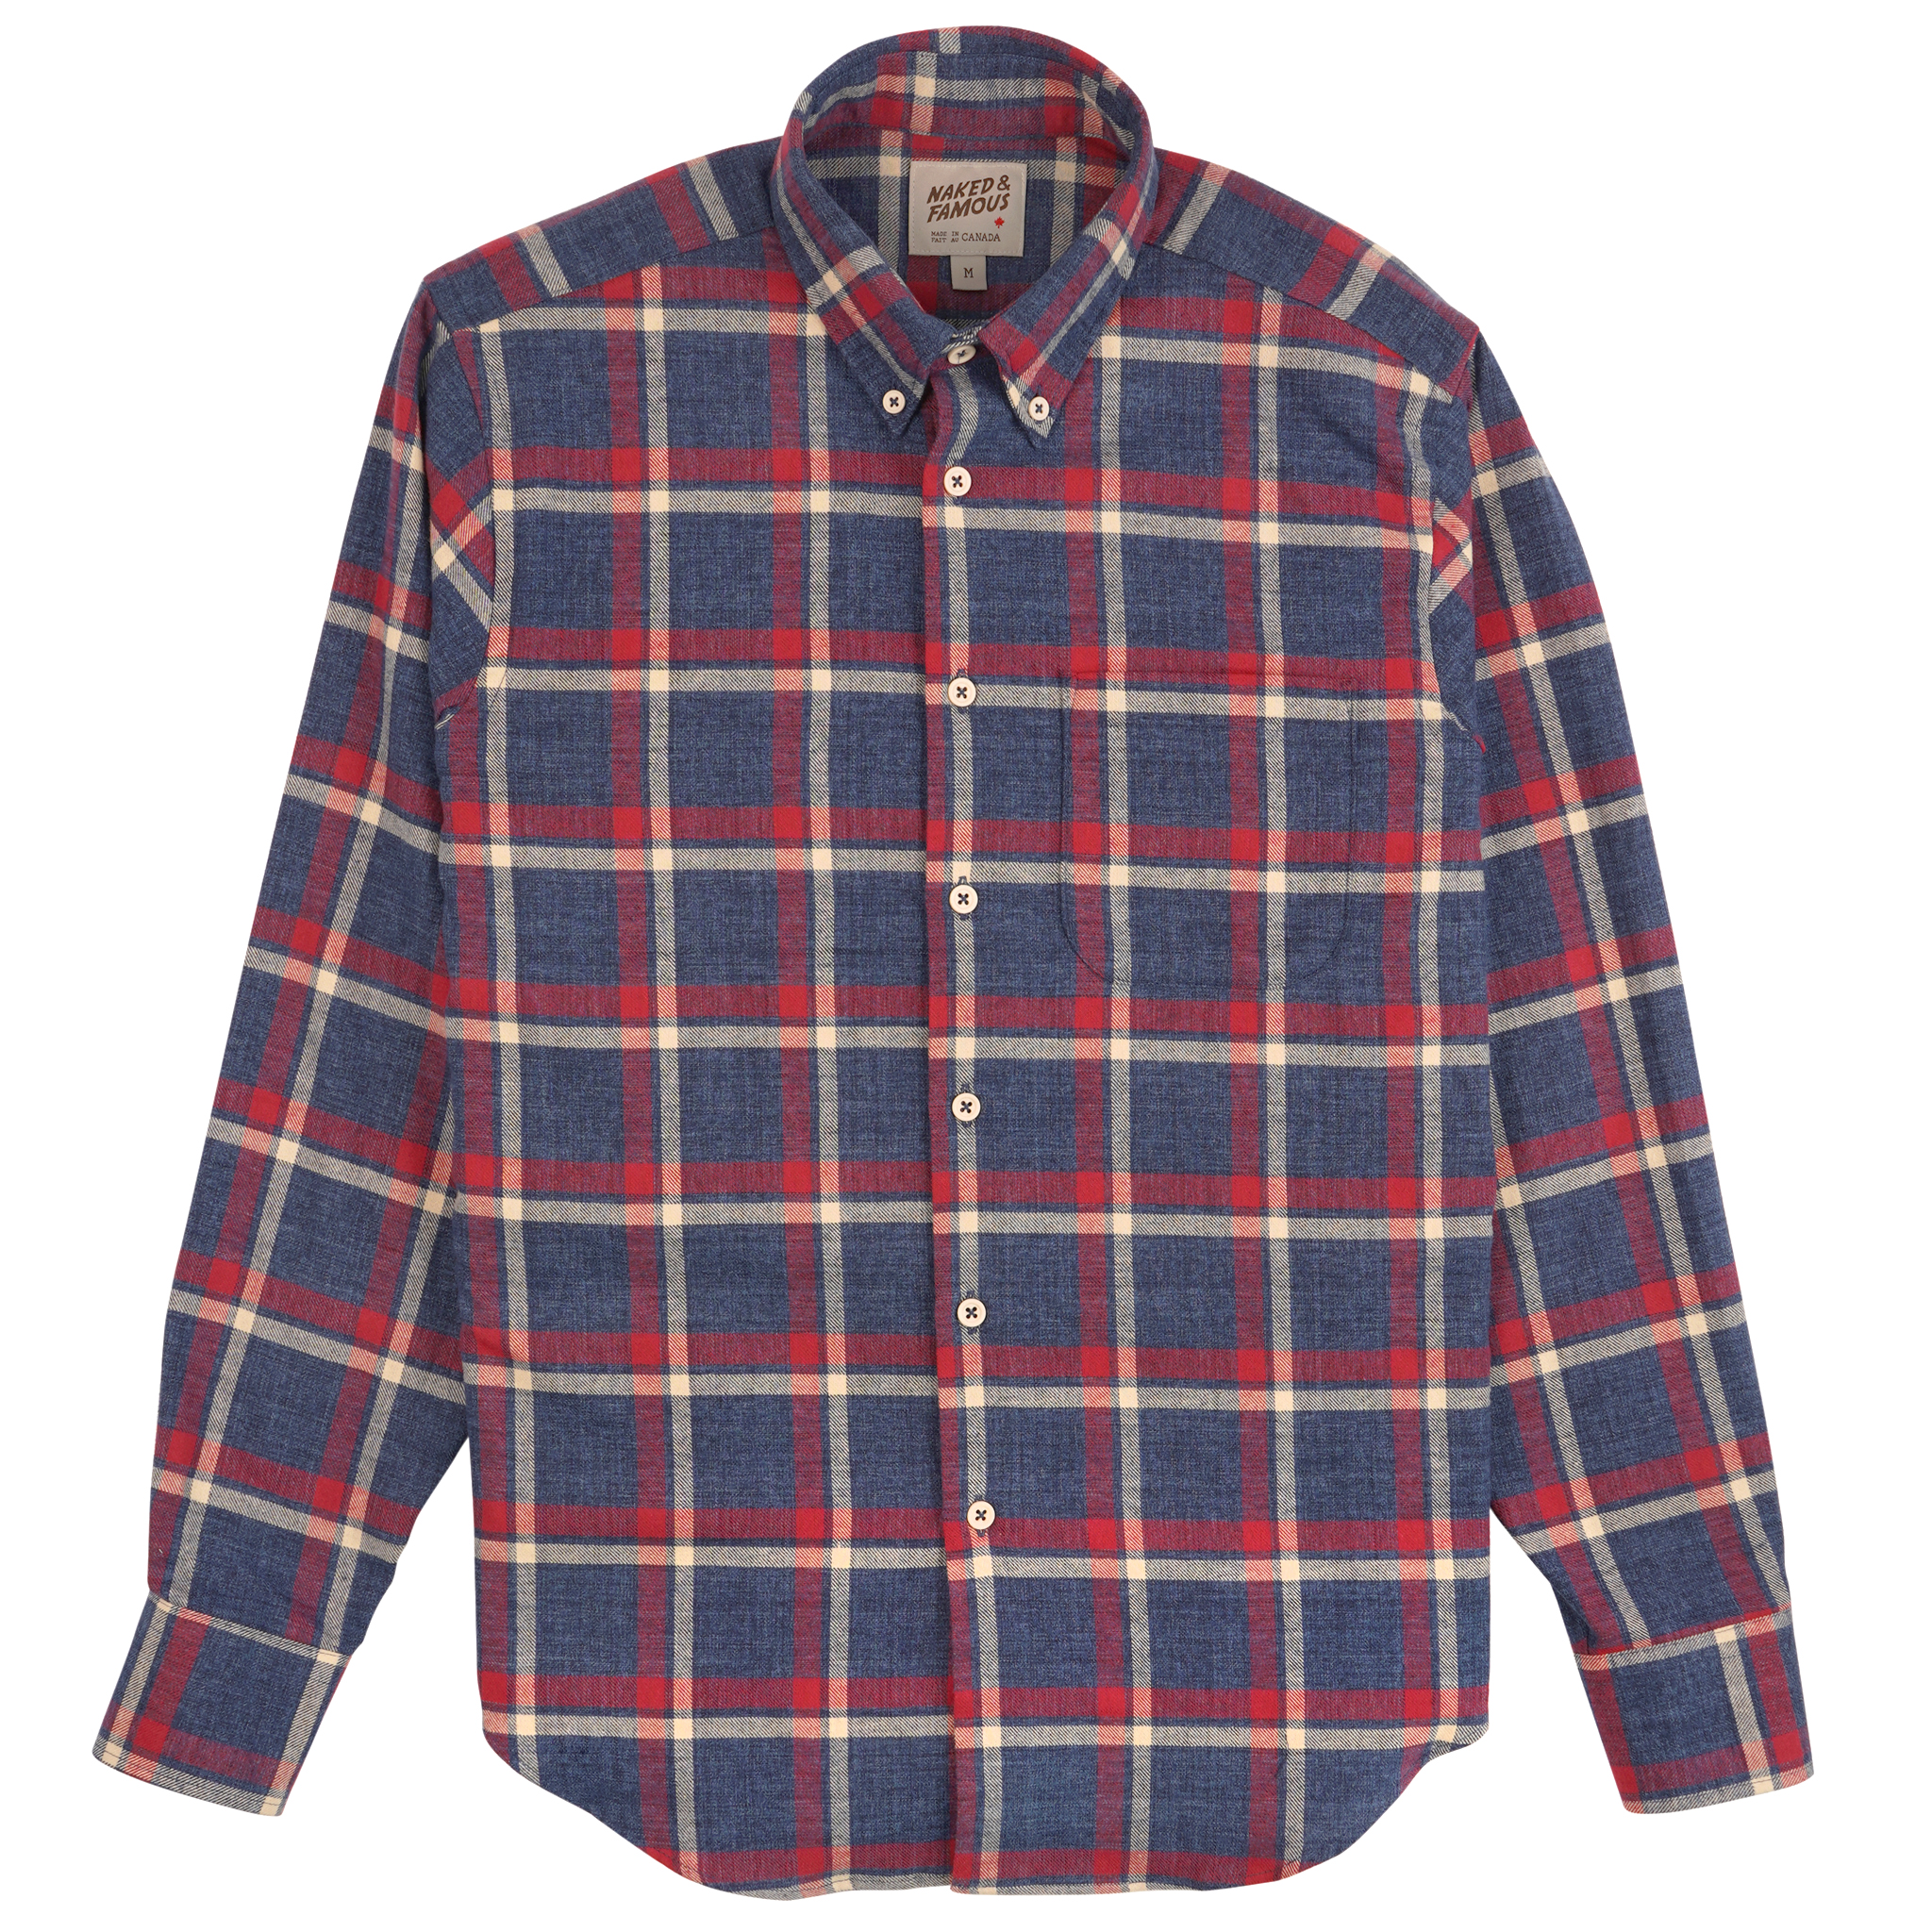 Northern Brushed Flannel - Blue/red - Easy Shirt